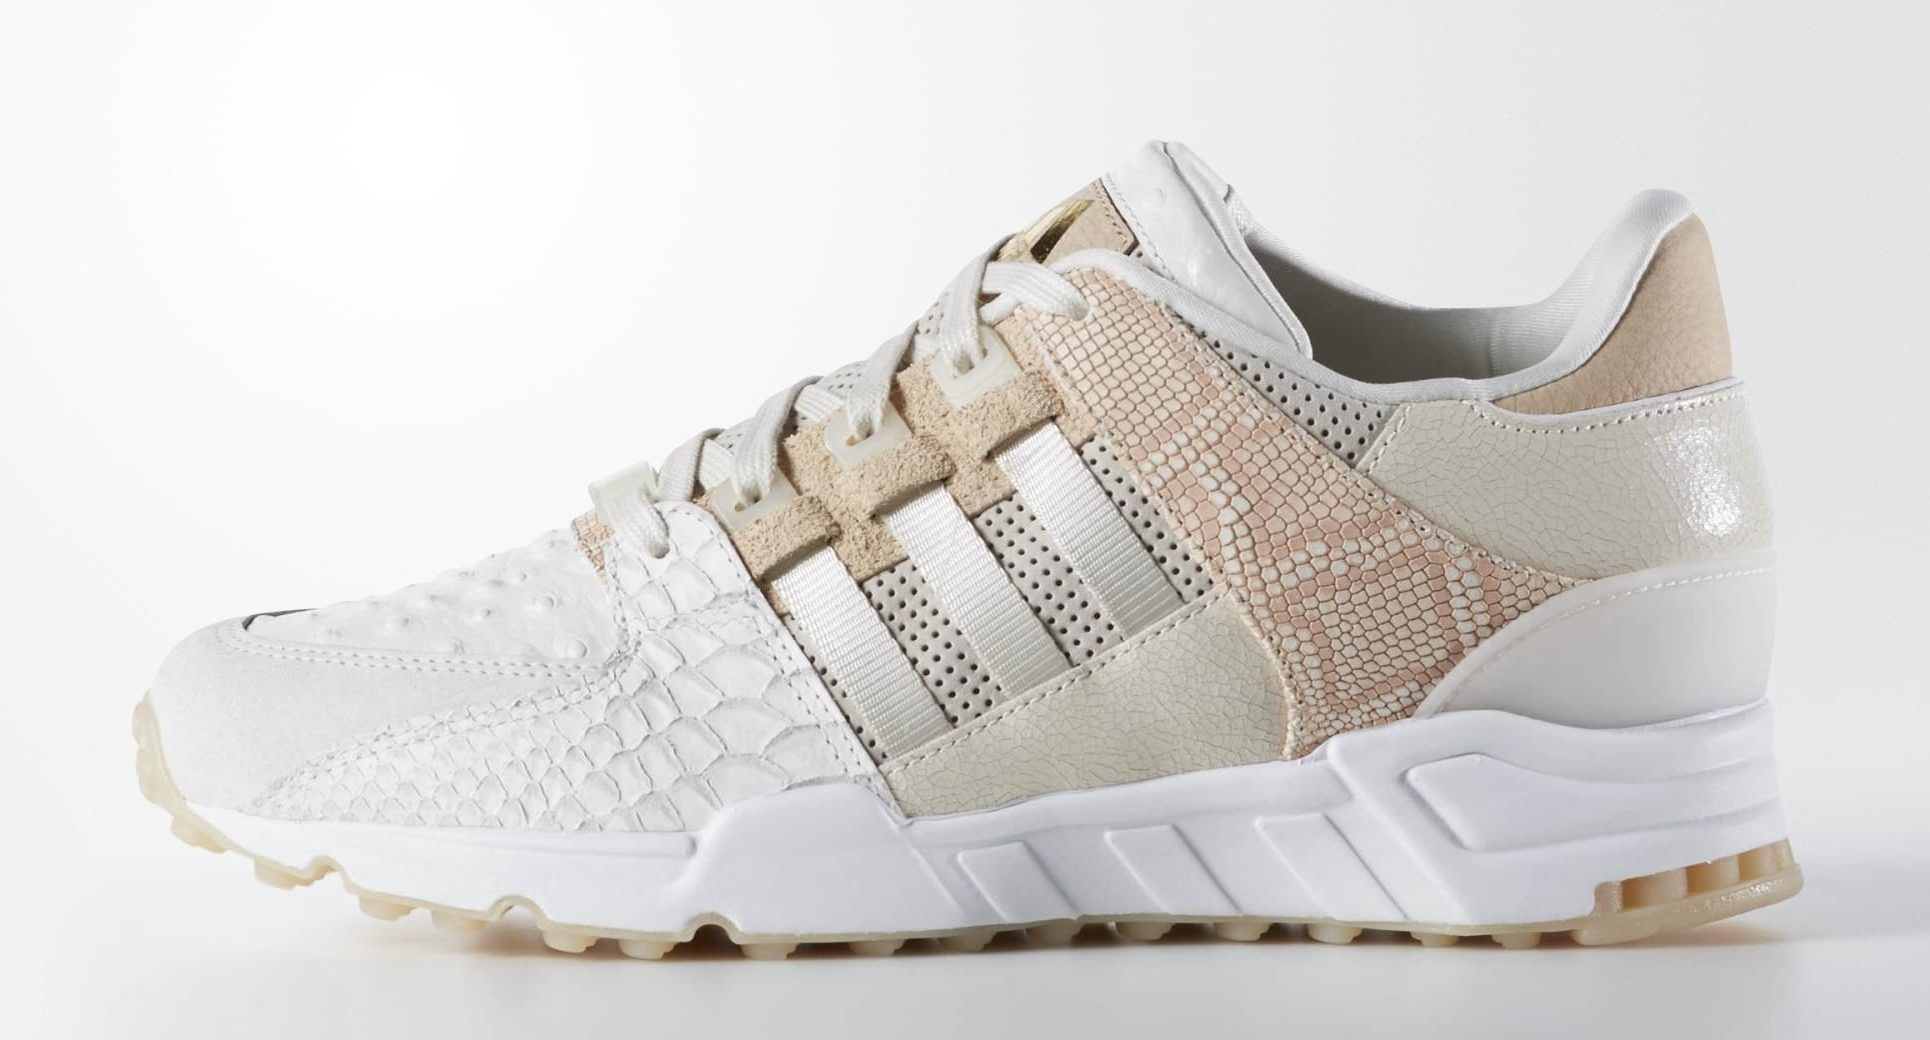 Adidas Eqt Running Support 93 Oddity Pack